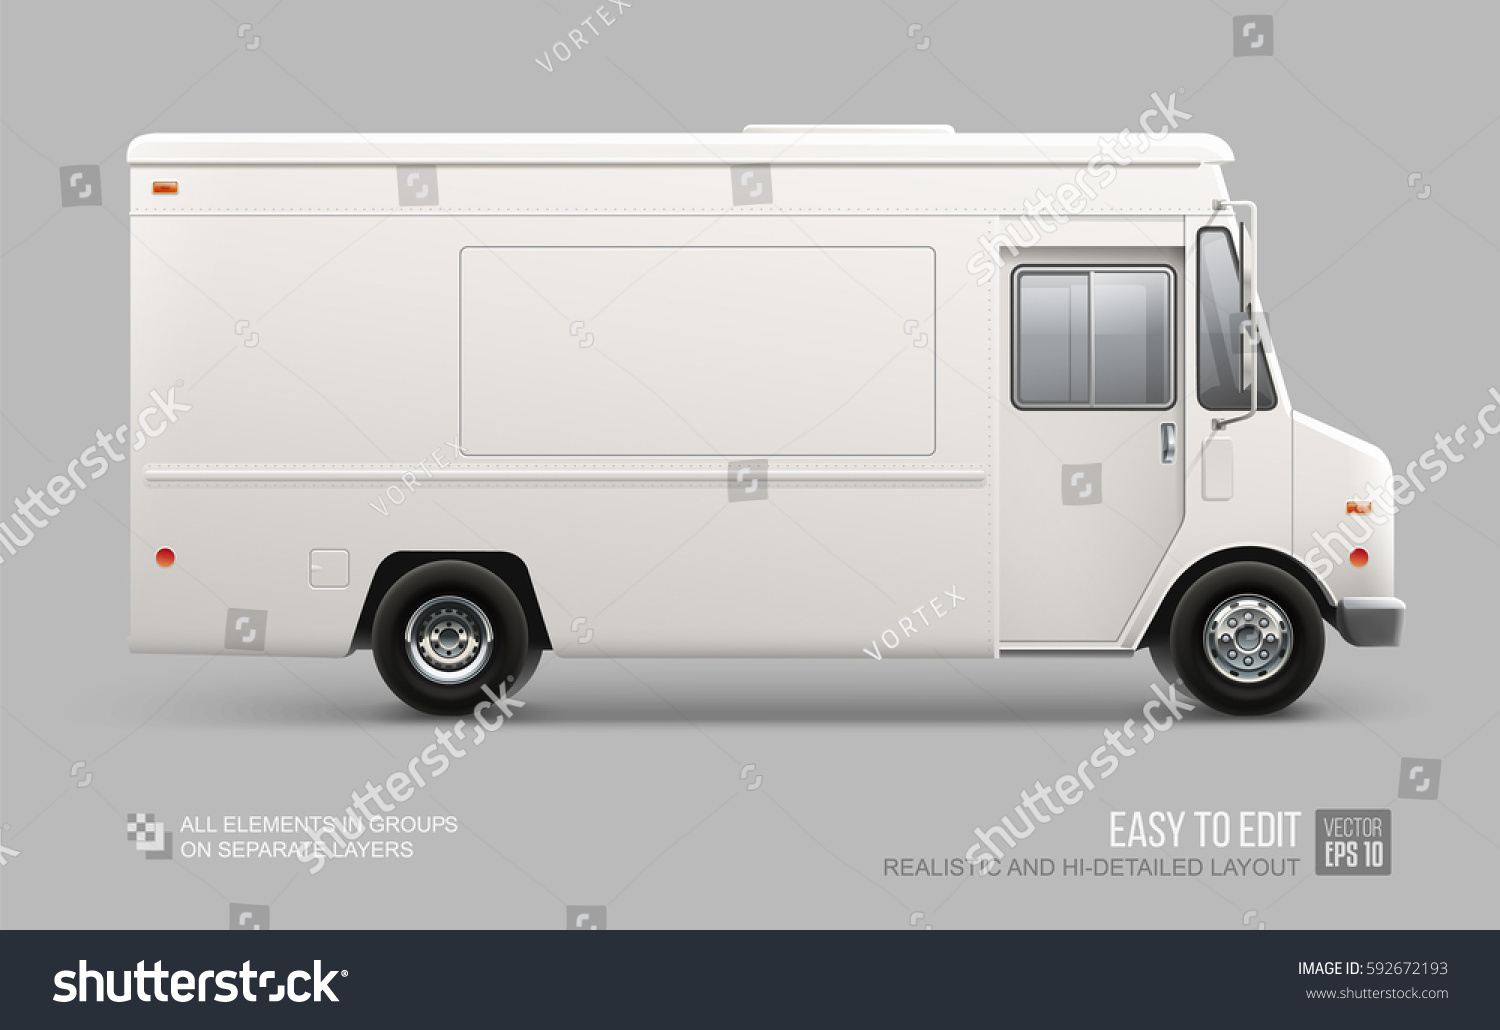 Blank Food Truck Design Template